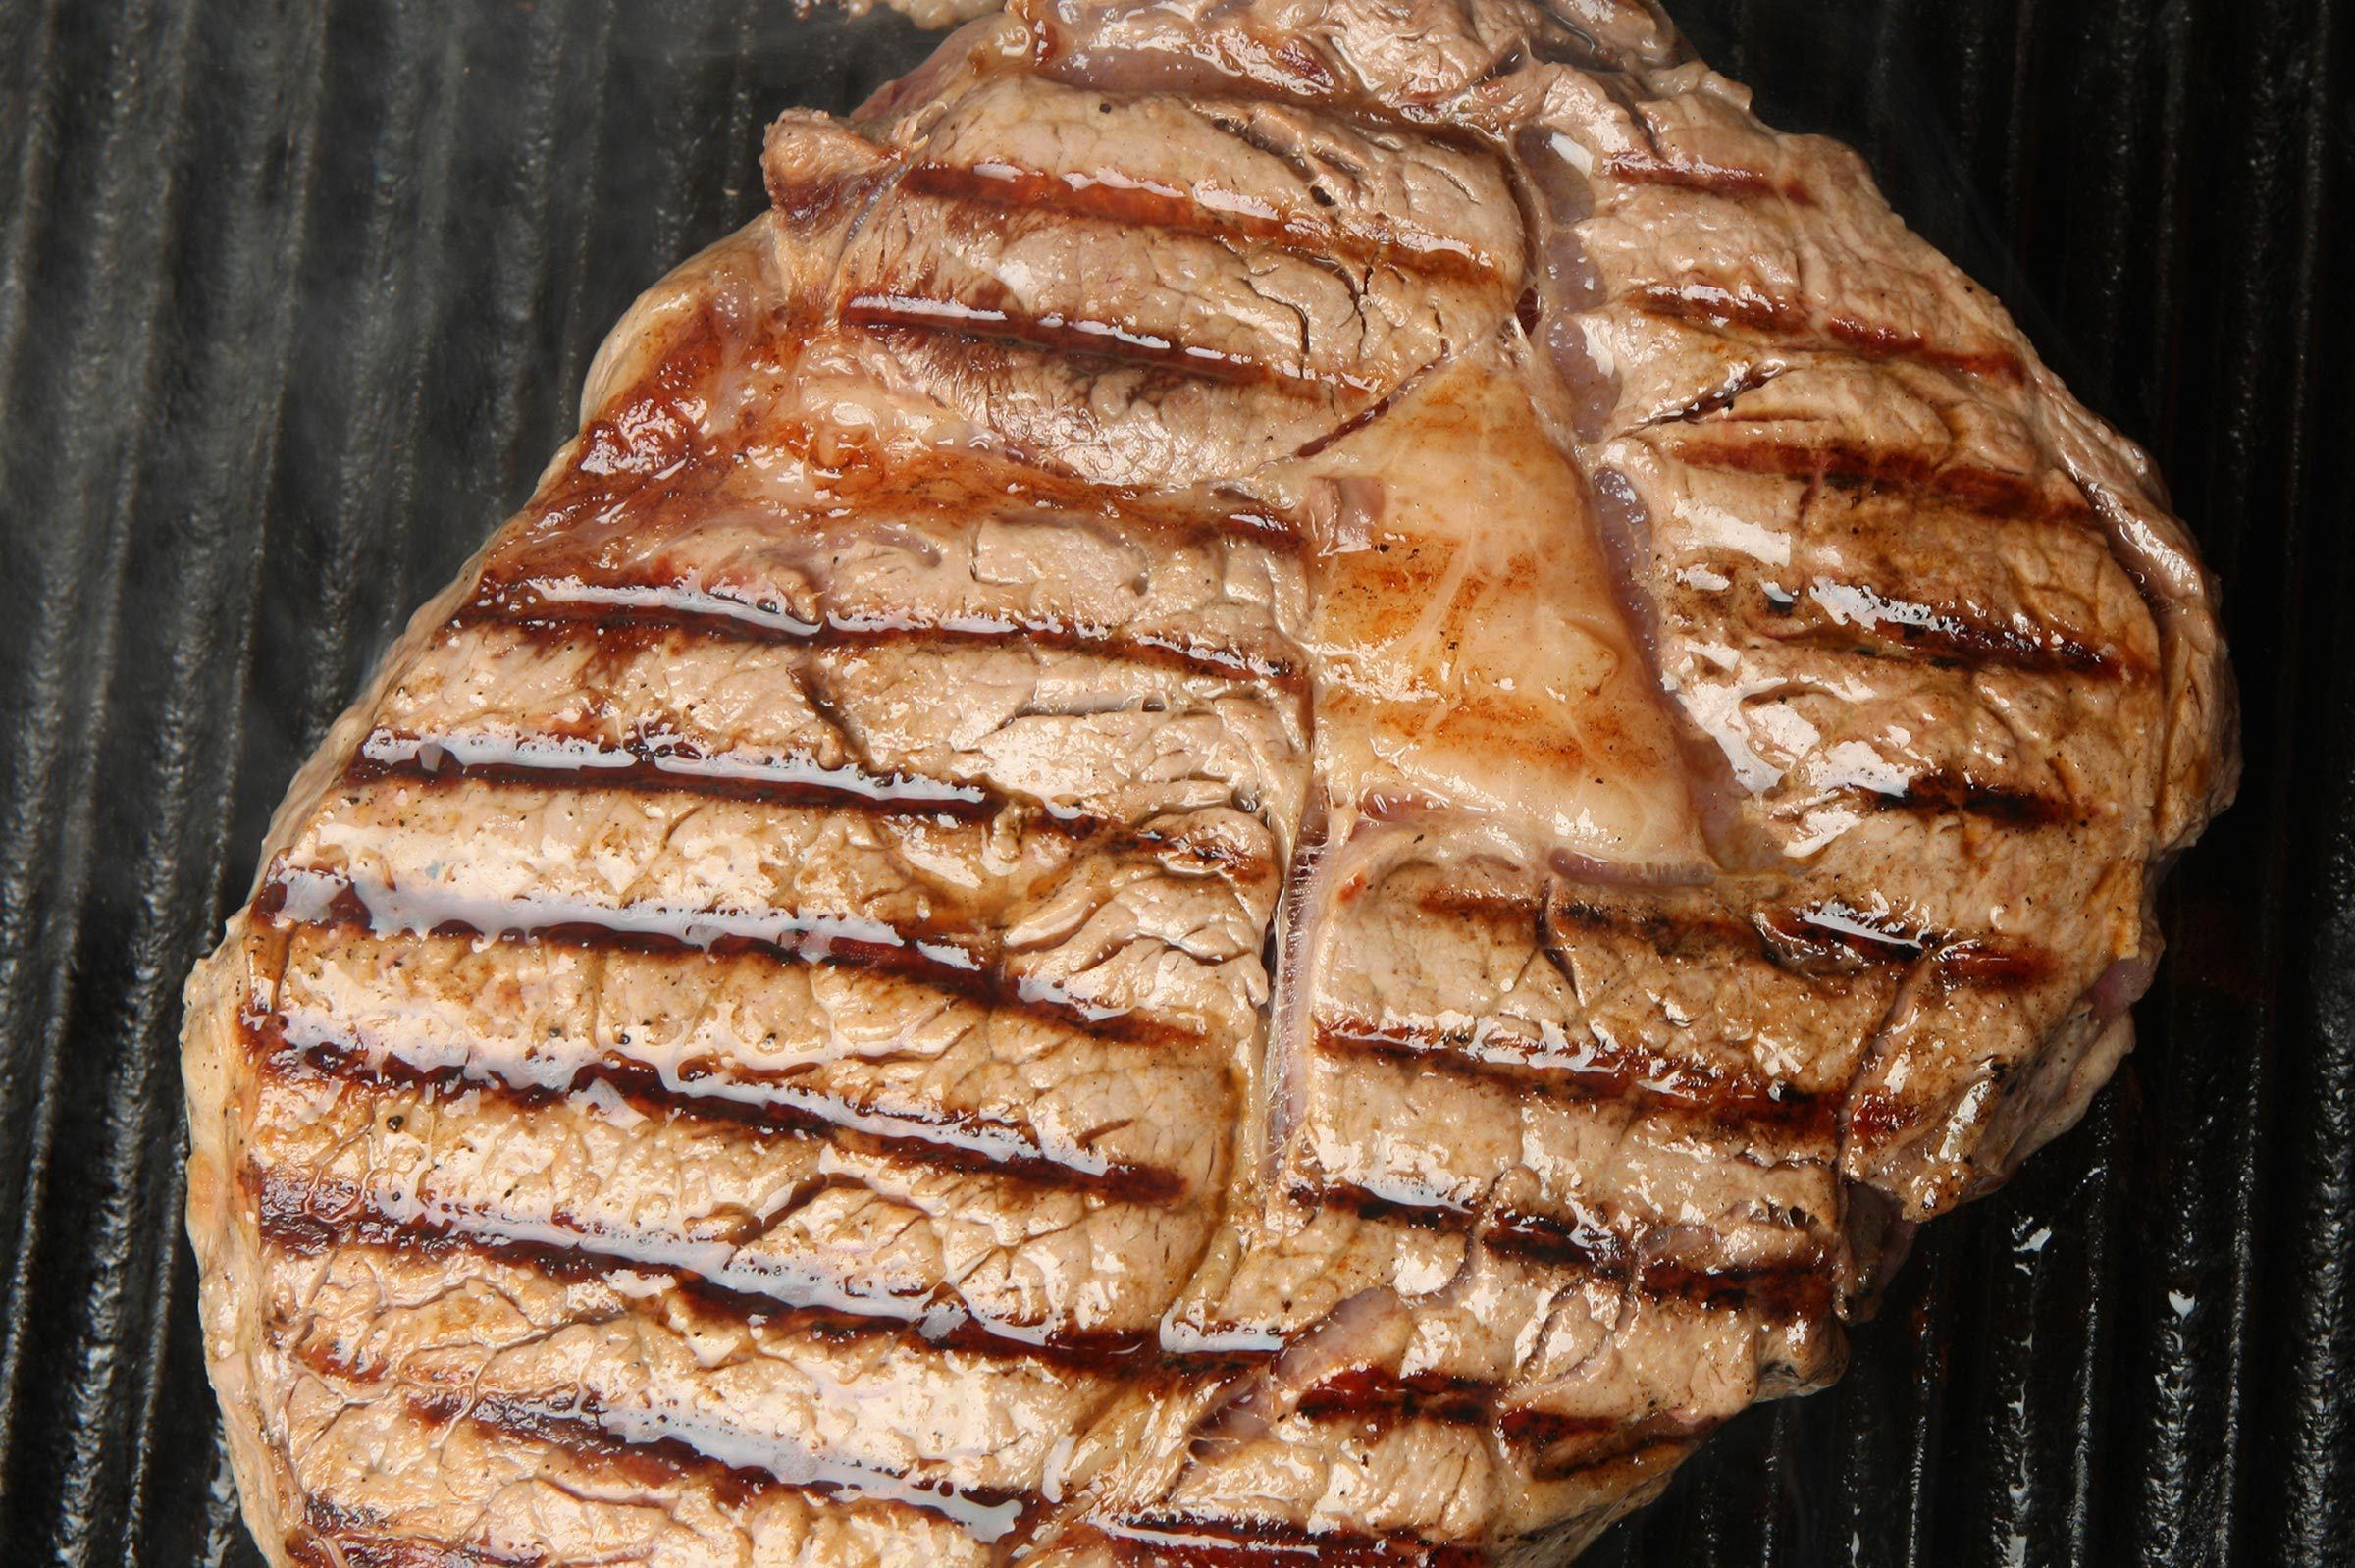 steak cooking grill